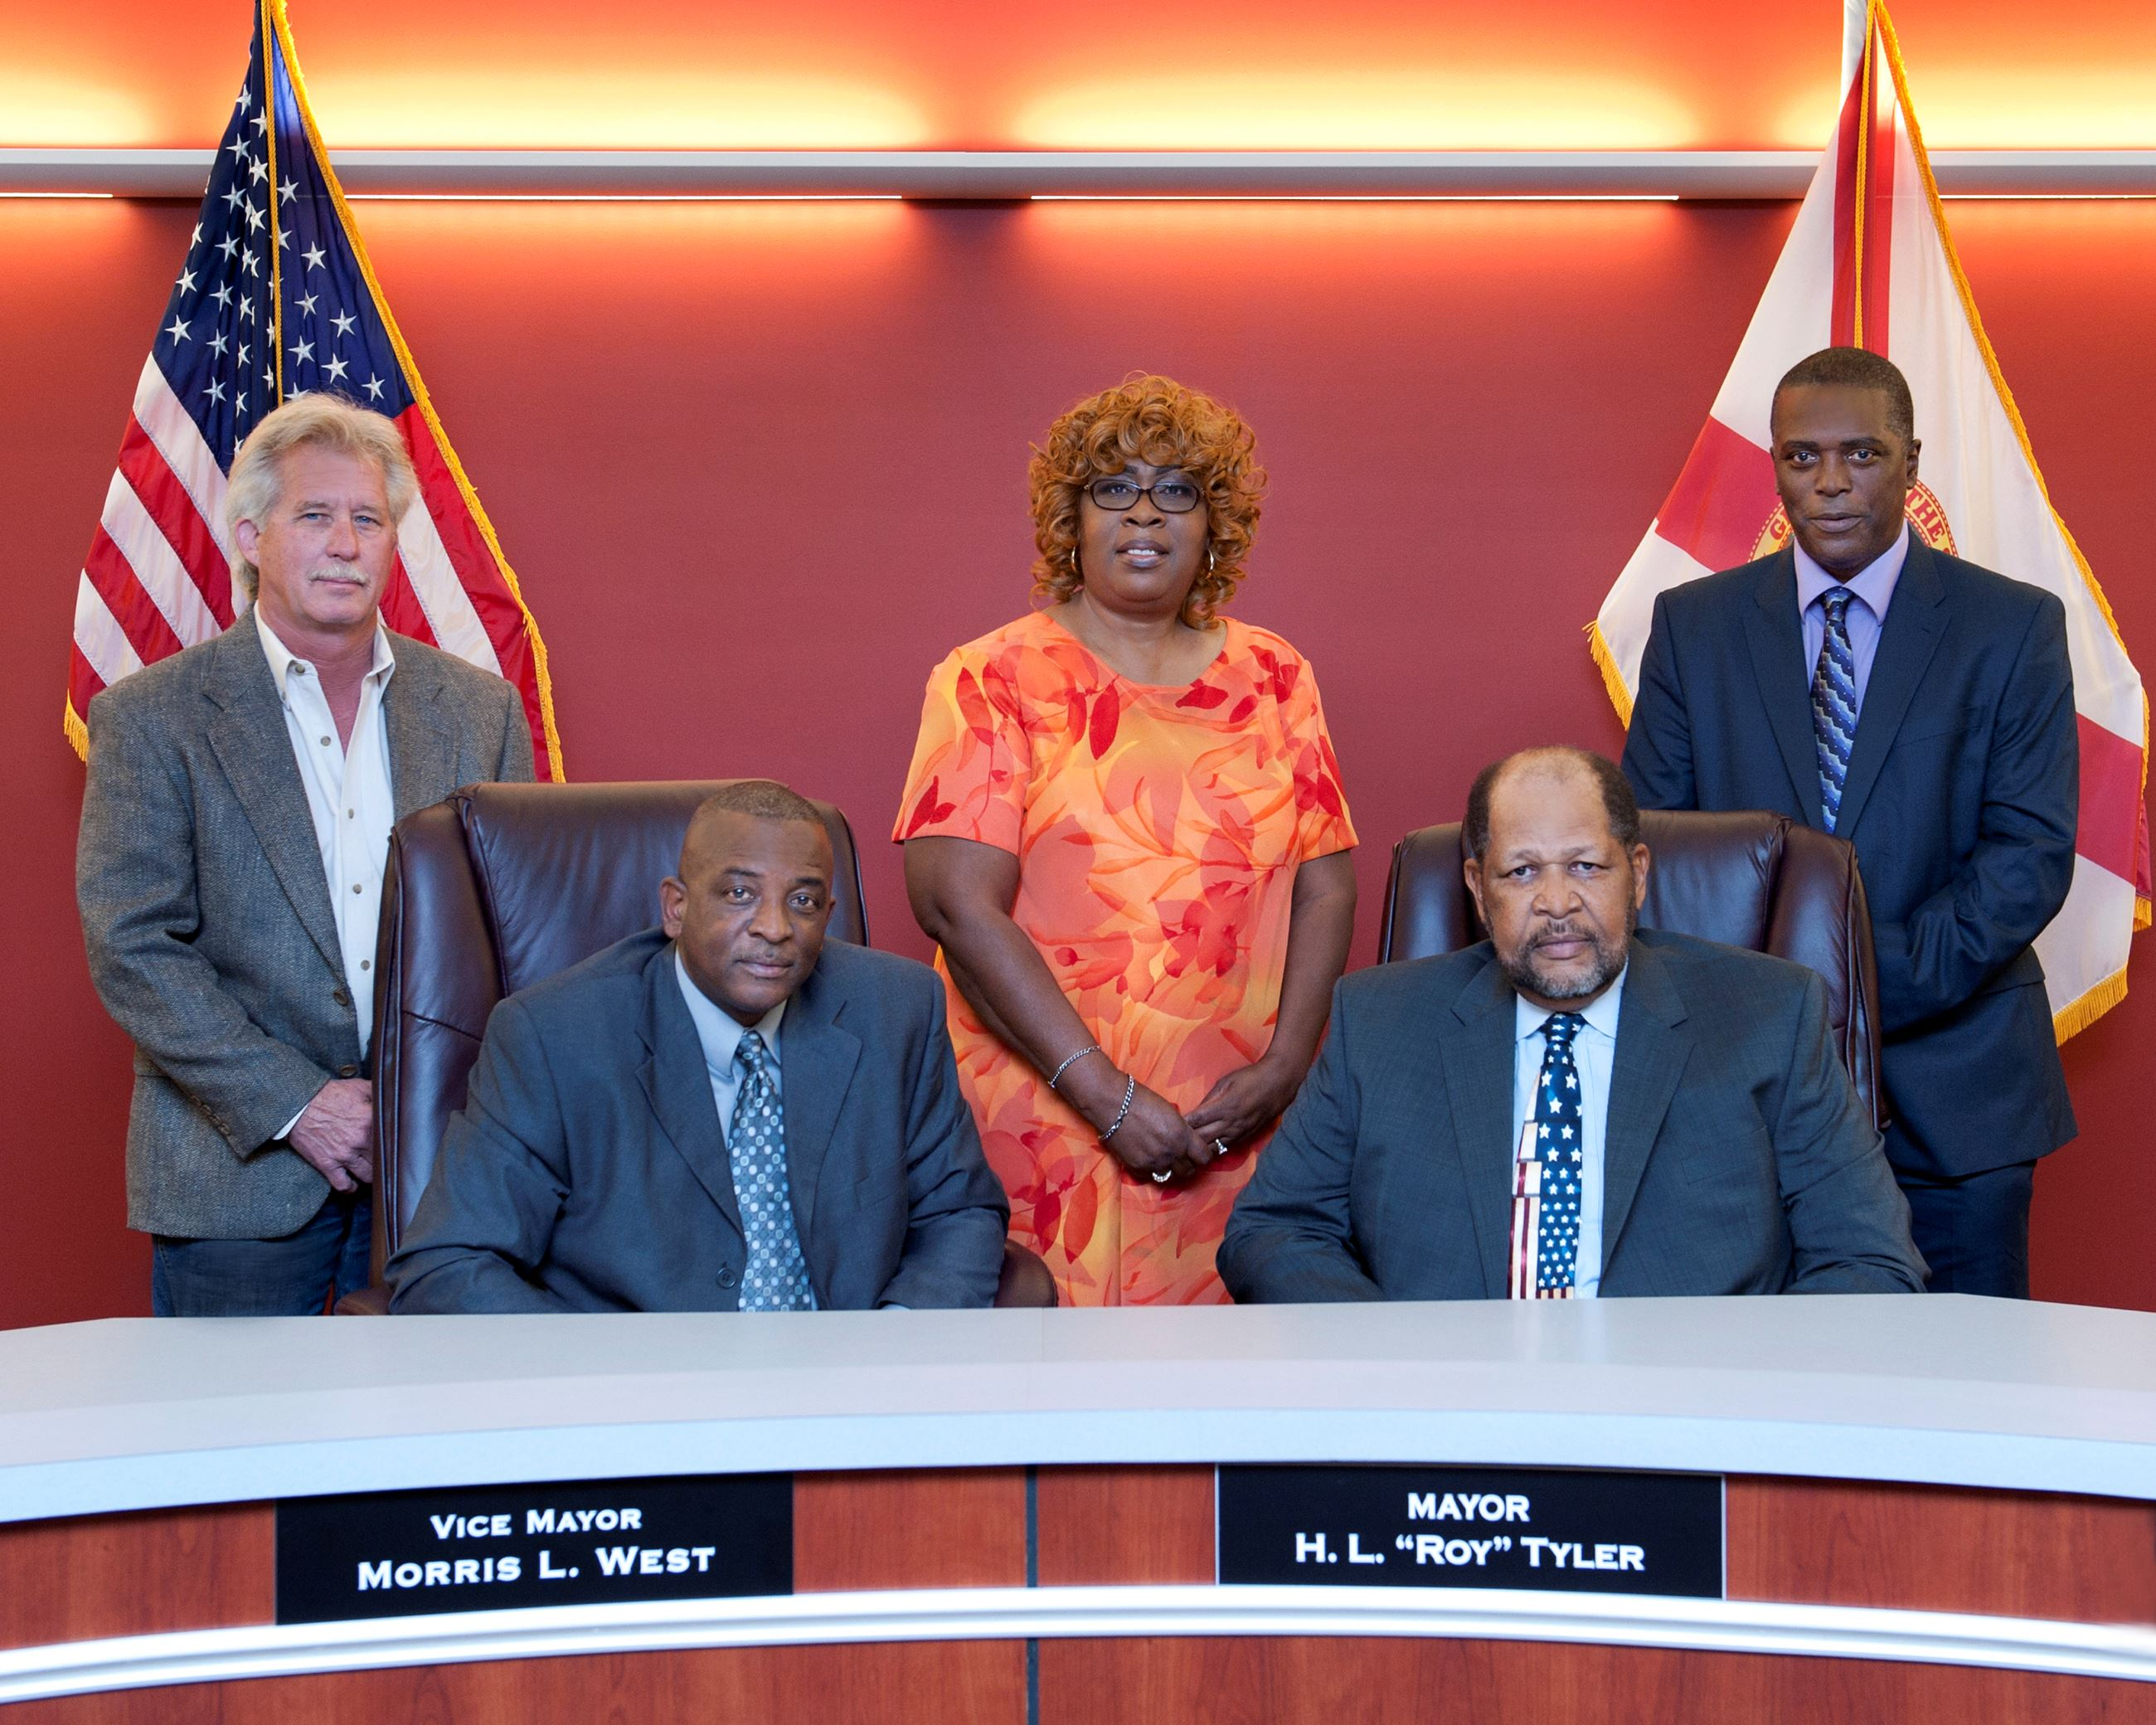 Picture of Haines City Commission Members in 2017